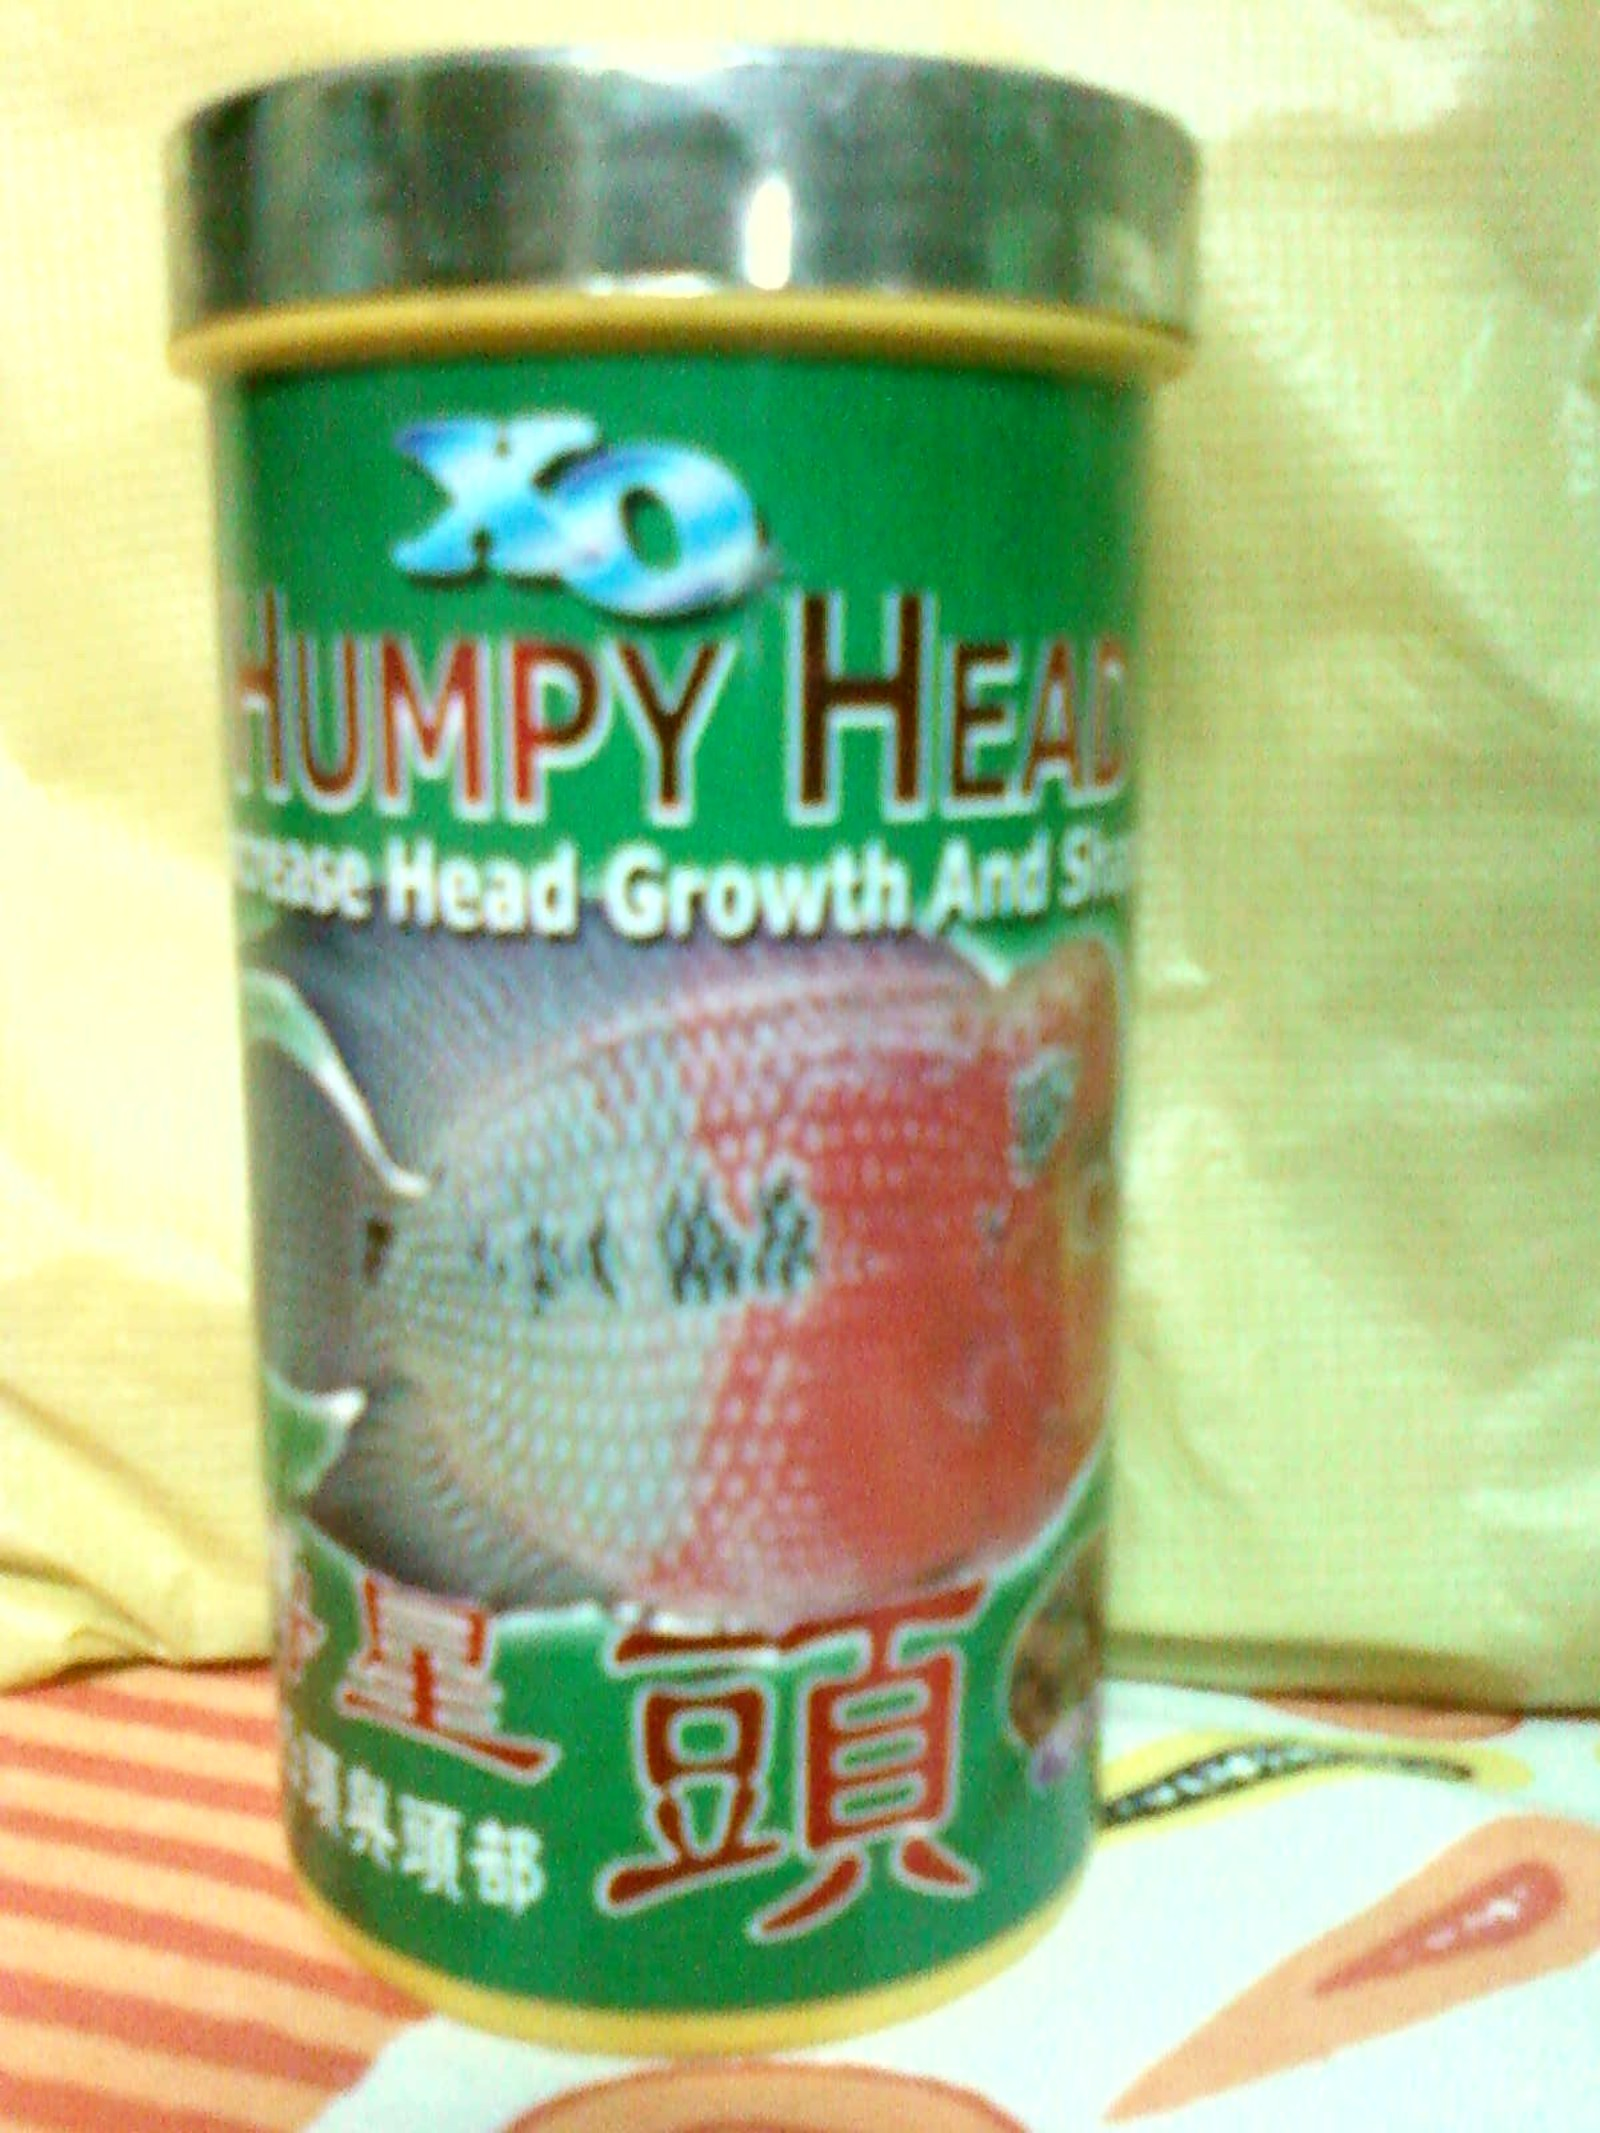 XO HUMPY HEAD for my flowerhorn | by Tirthabrata Panja